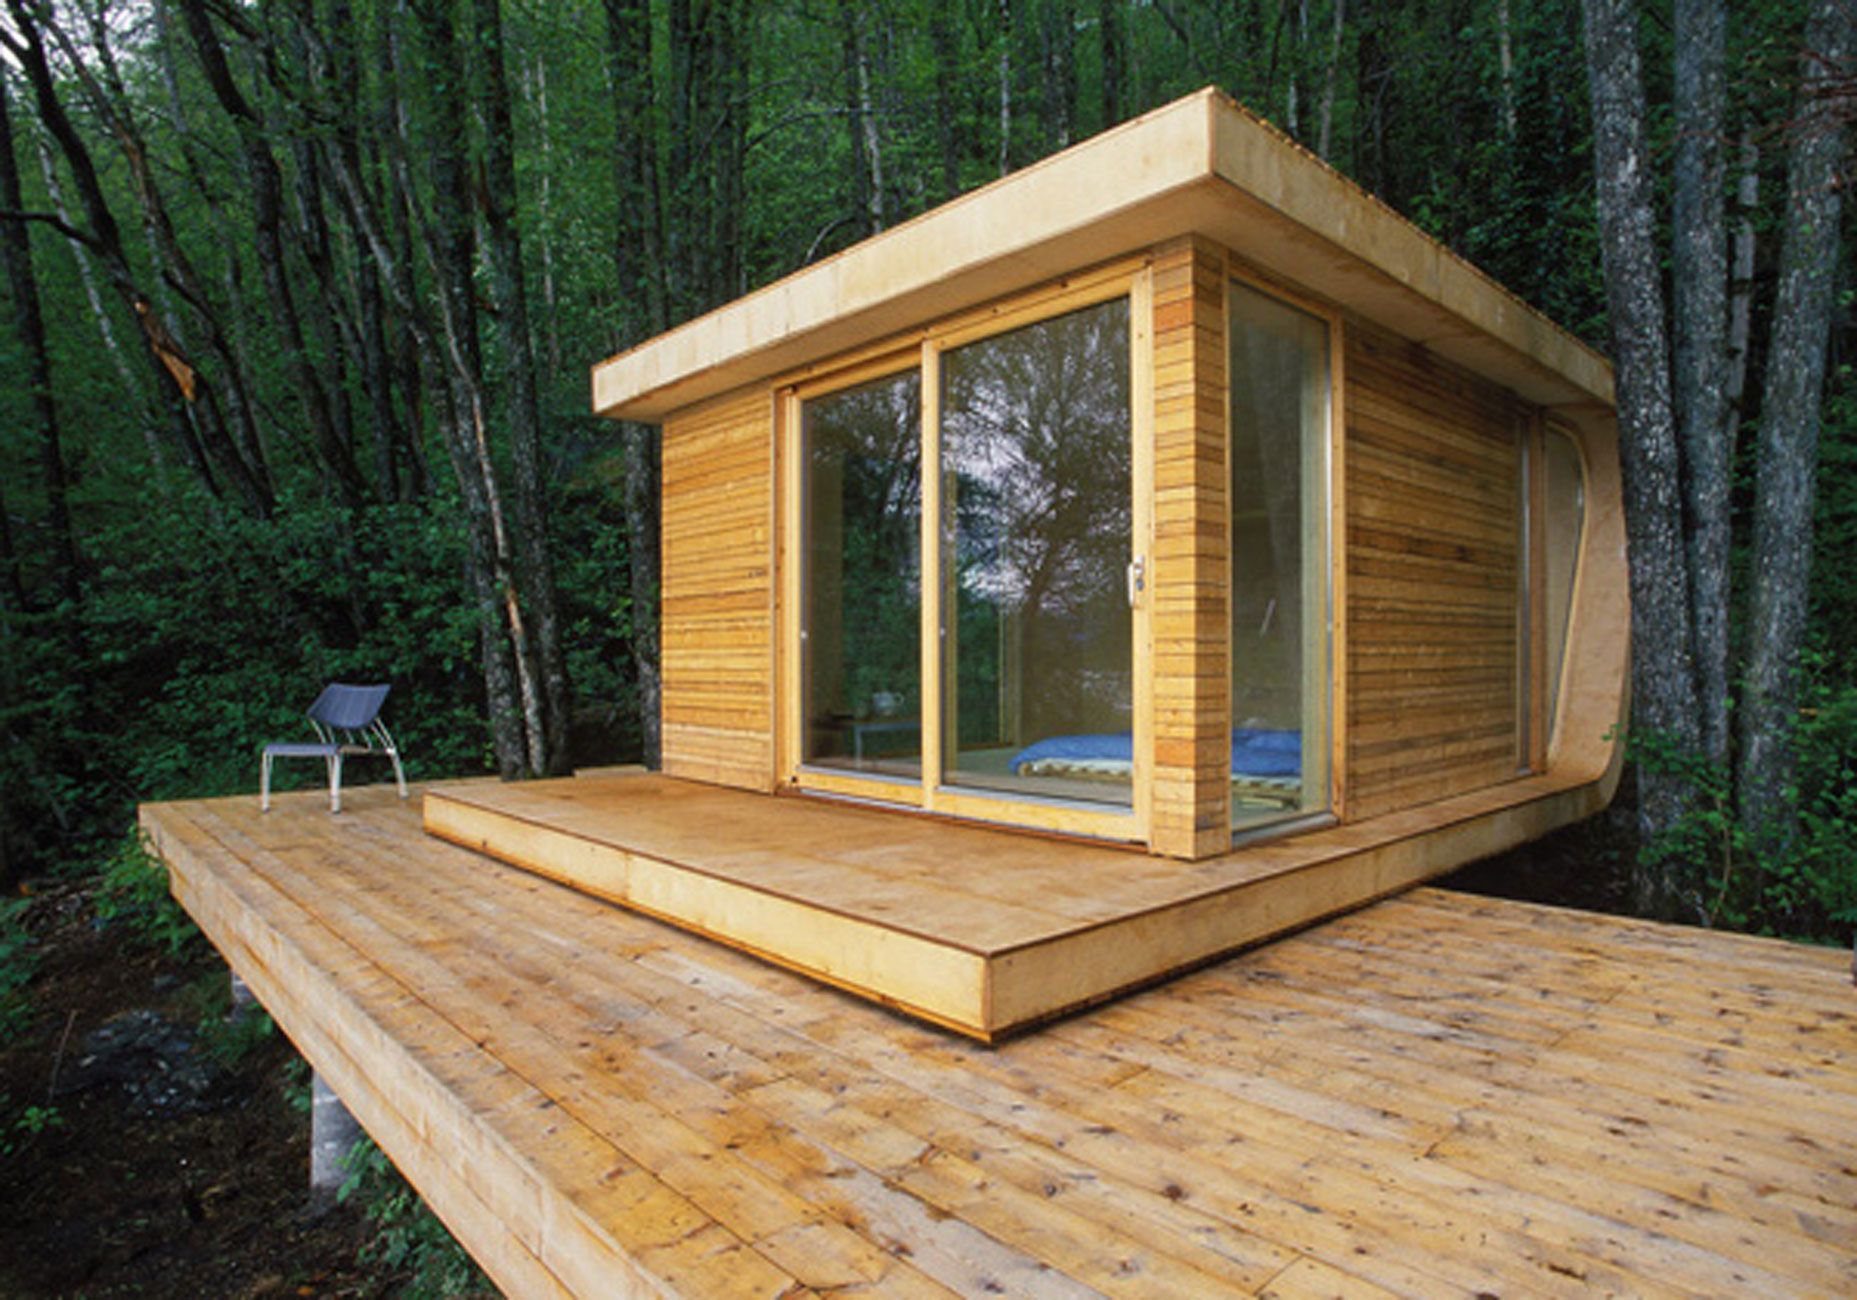 Wood House Plans Depiction Of Small Lake Plan U2013 The Nuance Airy Vibe With